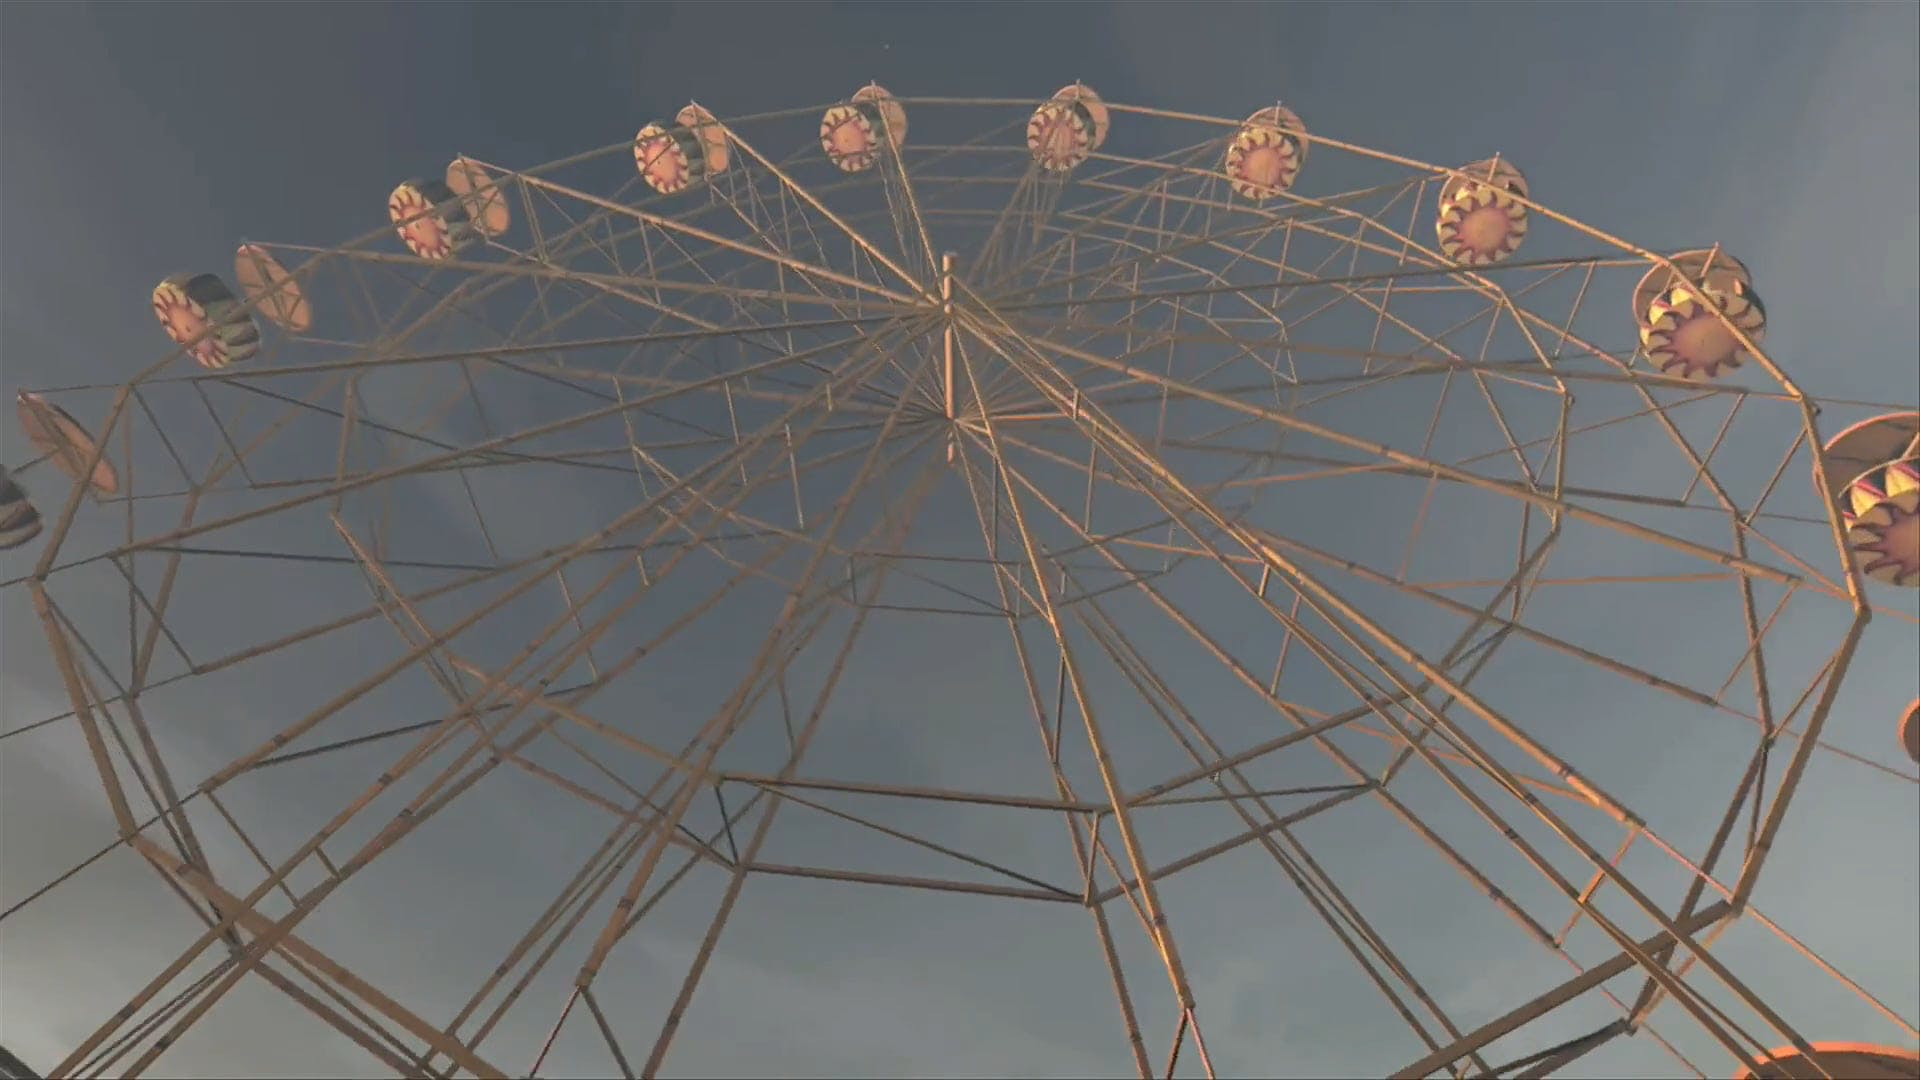 Video Of Ferris Wheel